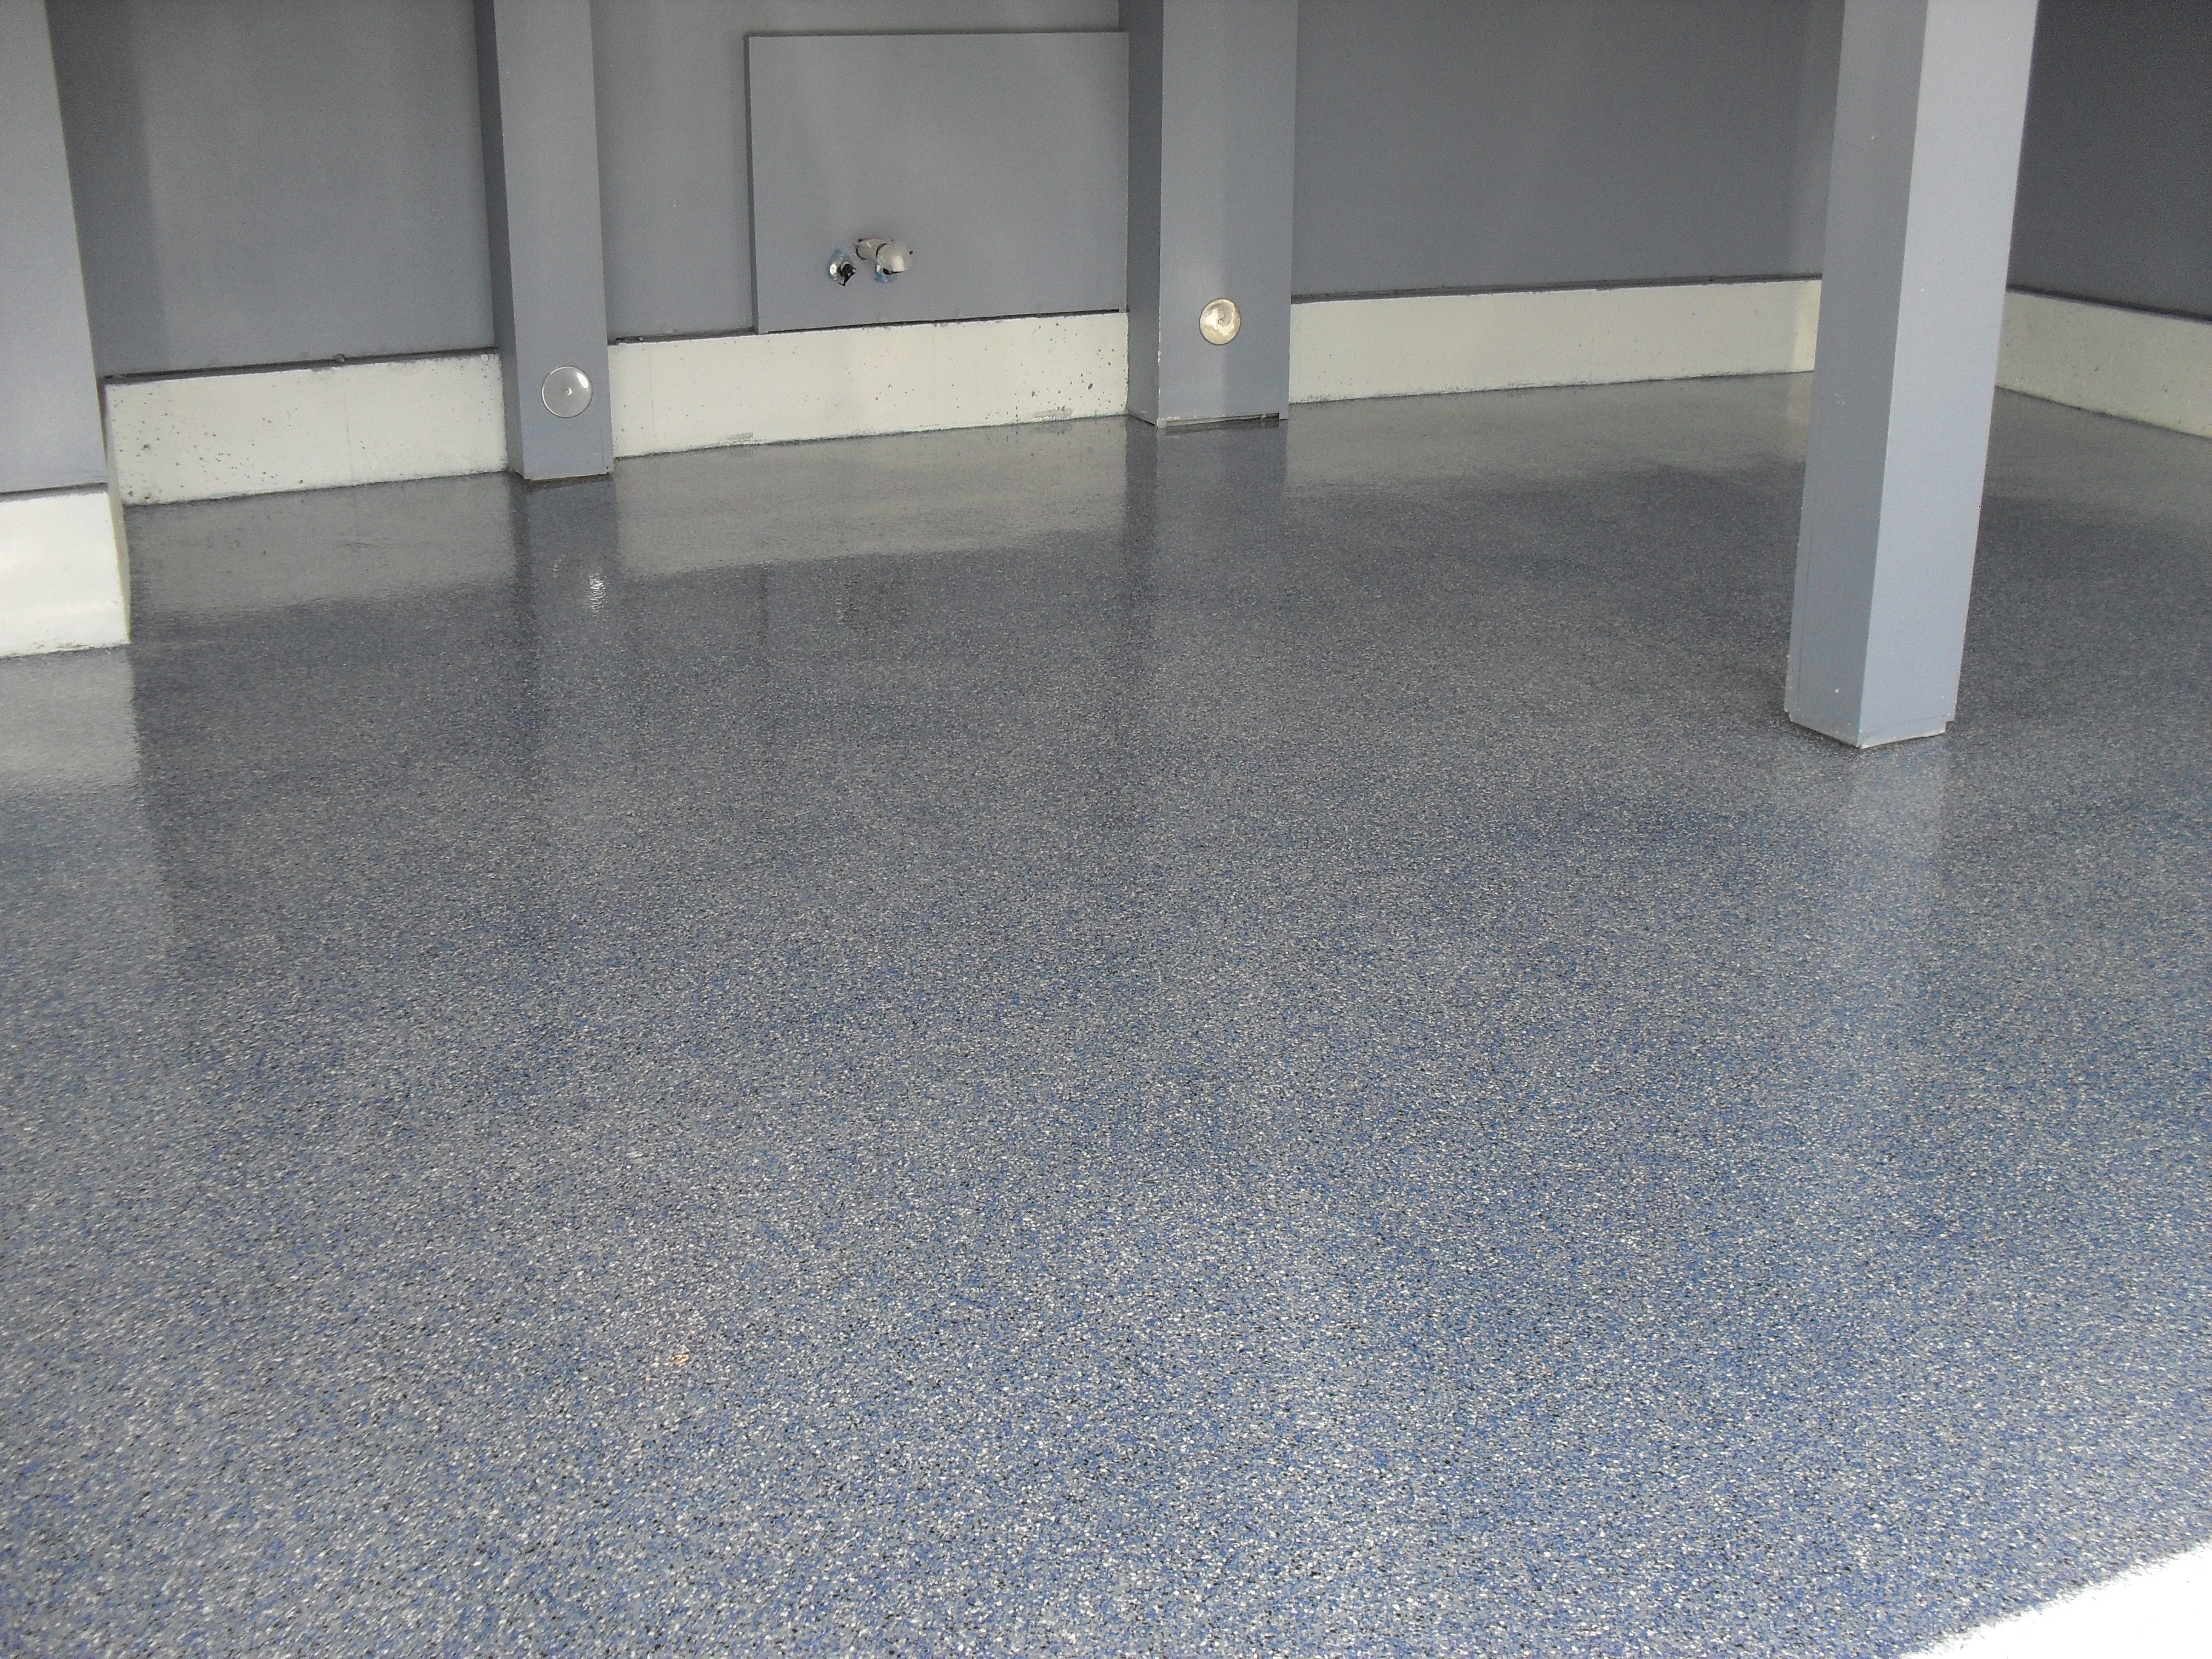 Inspirational Home Depot Paint for Garage Floors Insured By Ross